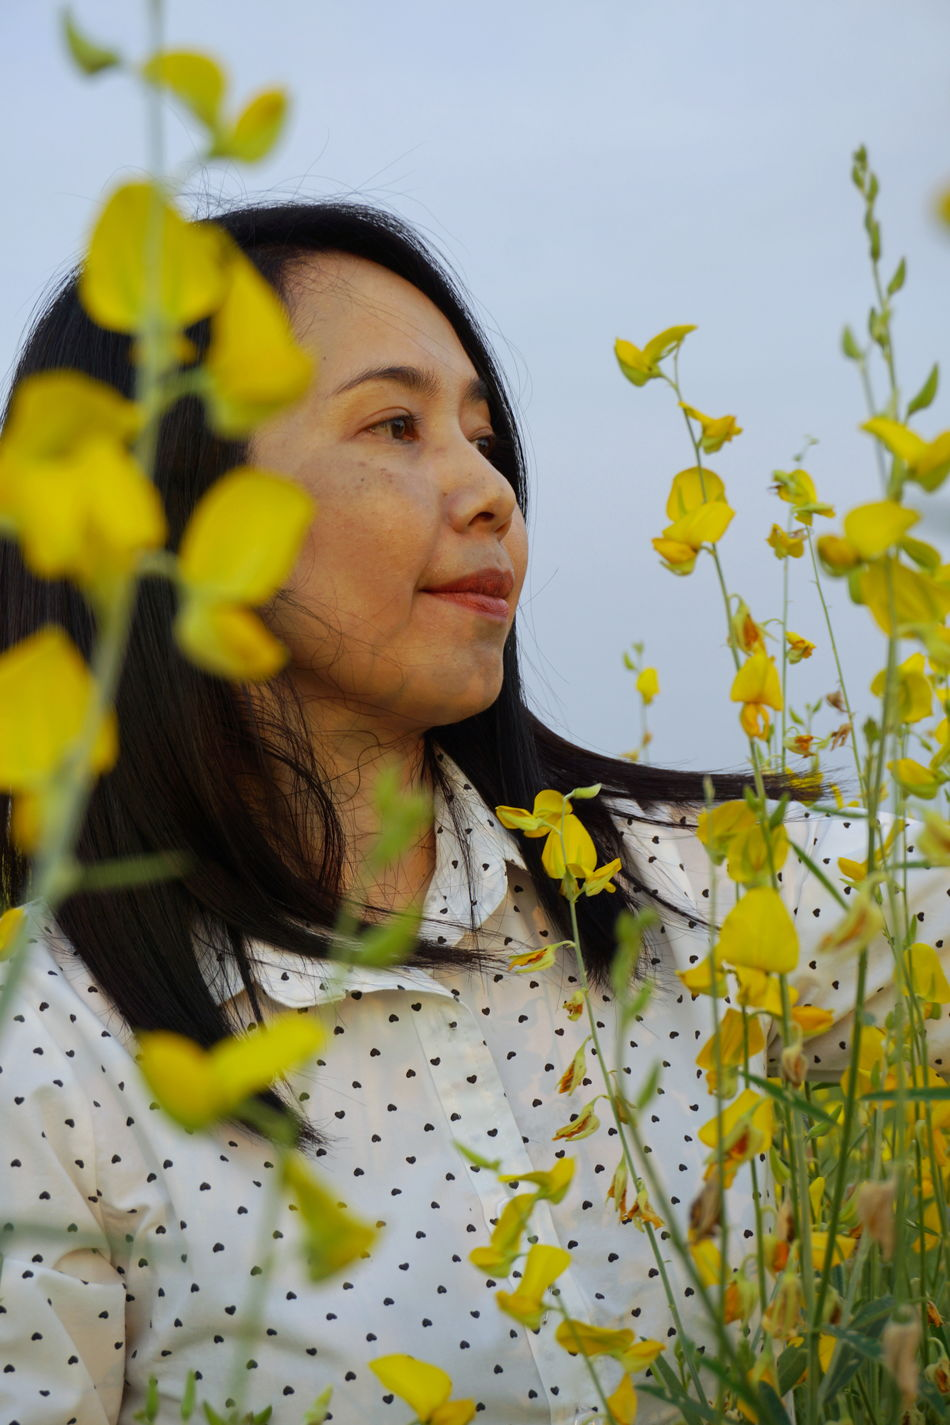 Close-up Day Flower Nature One Person Outdoors People Plant Portrait